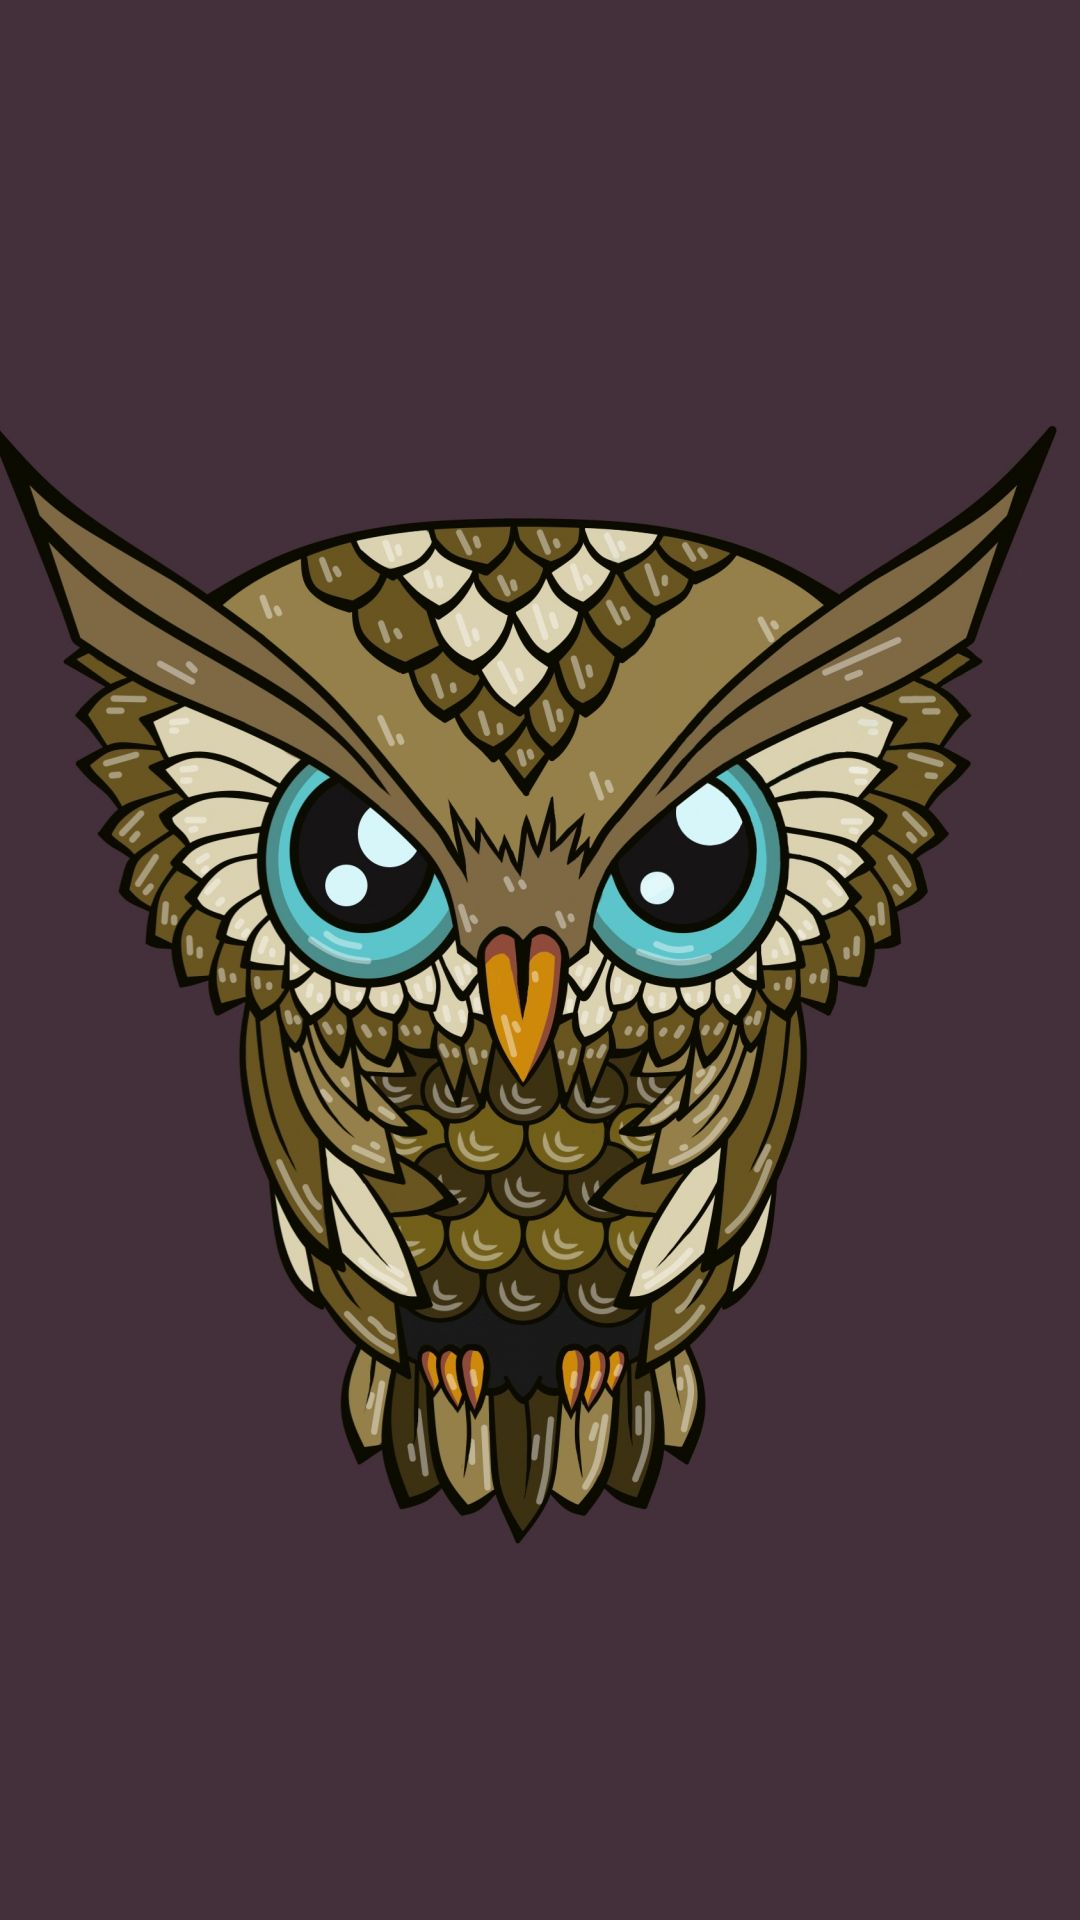 Owl hd wallpapers backgrounds wallpaper hd wallpapers pinterest owl hd wallpapers backgrounds wallpaper voltagebd Choice Image